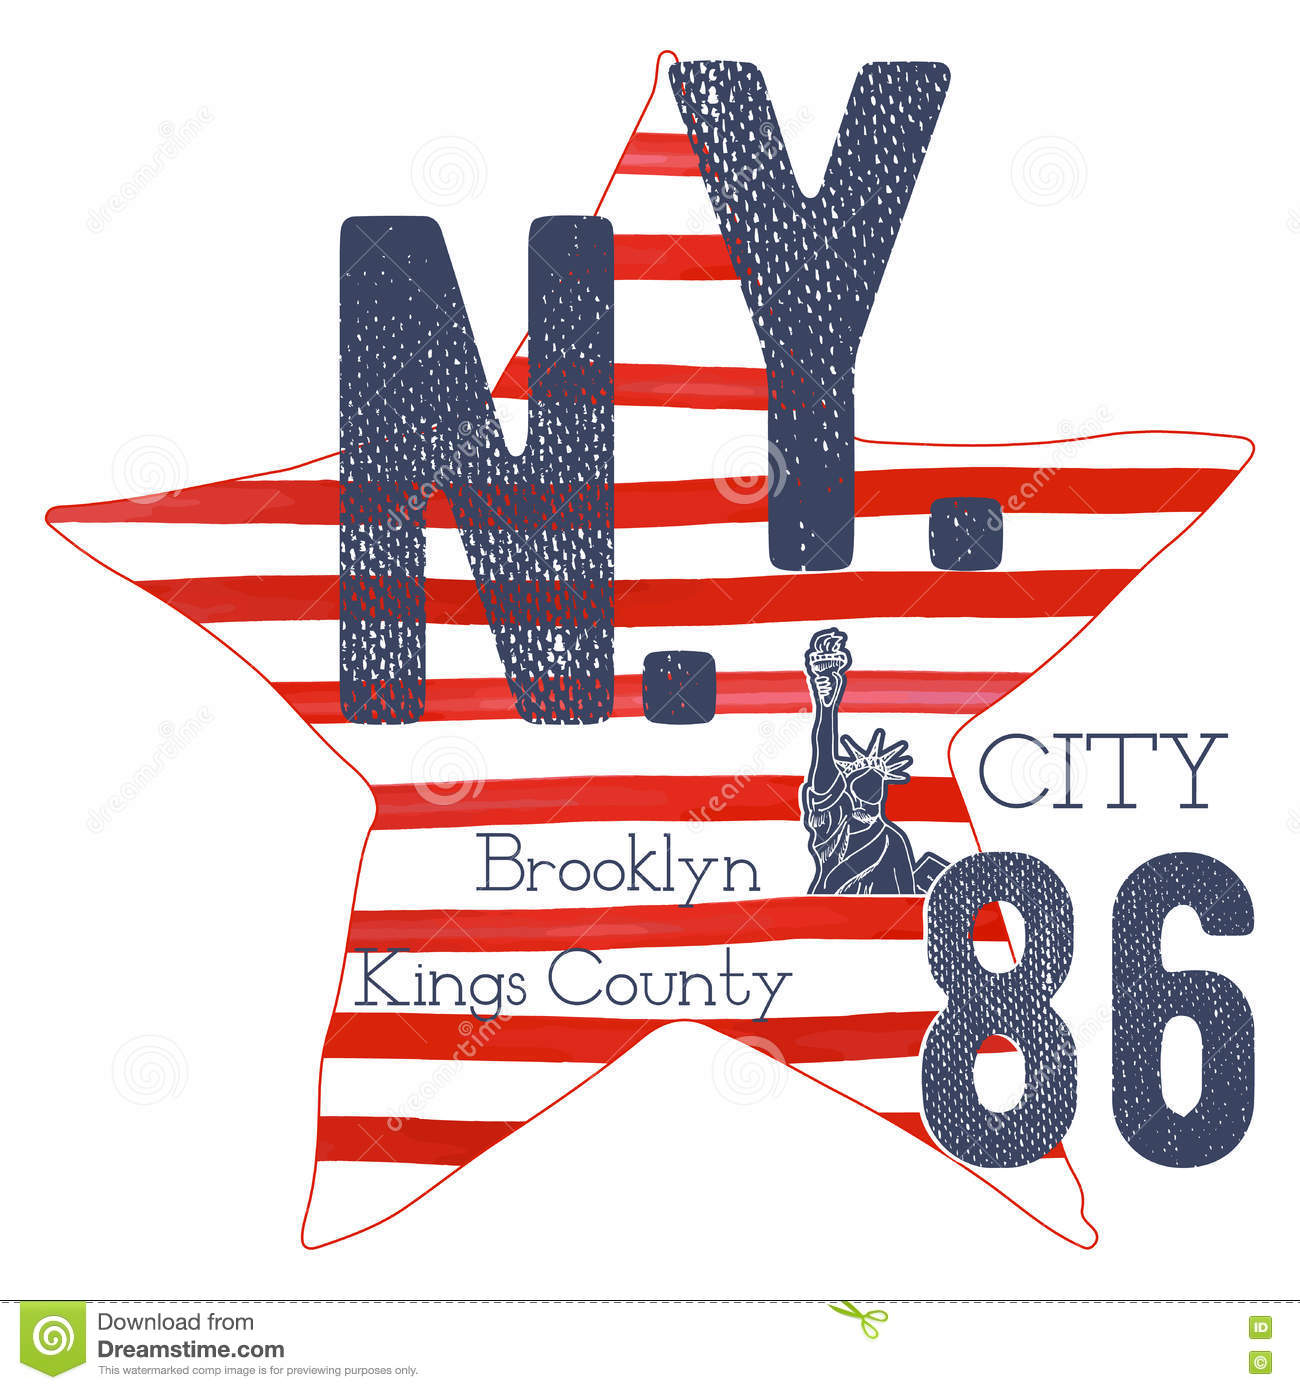 All graphics newest royalty free stock photos stock illustrations - T Shirt Typography Design Nyc Printing Graphics Typographic Vector Illustration New York